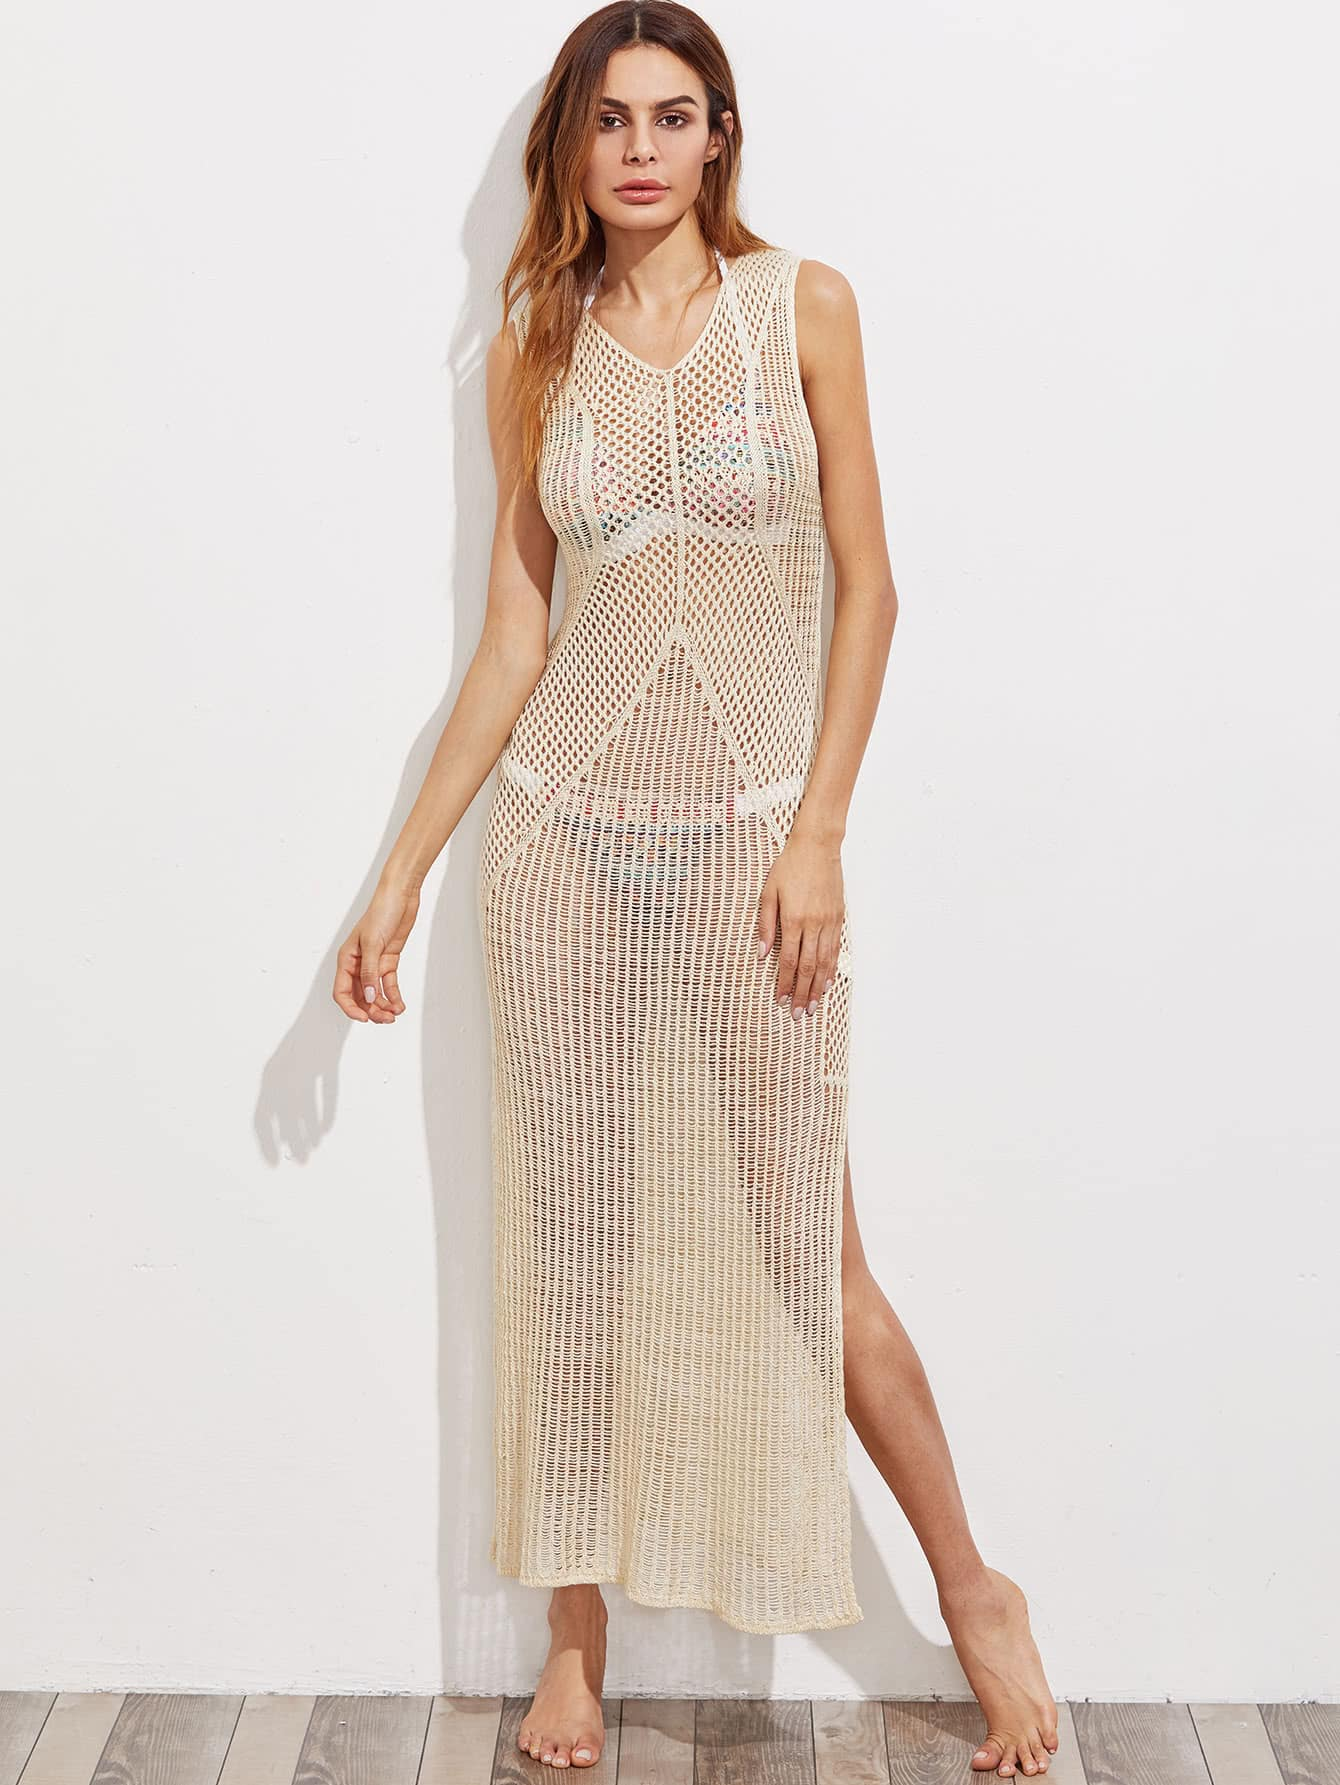 Hollow Out Slit Crochet Cover Up Dress